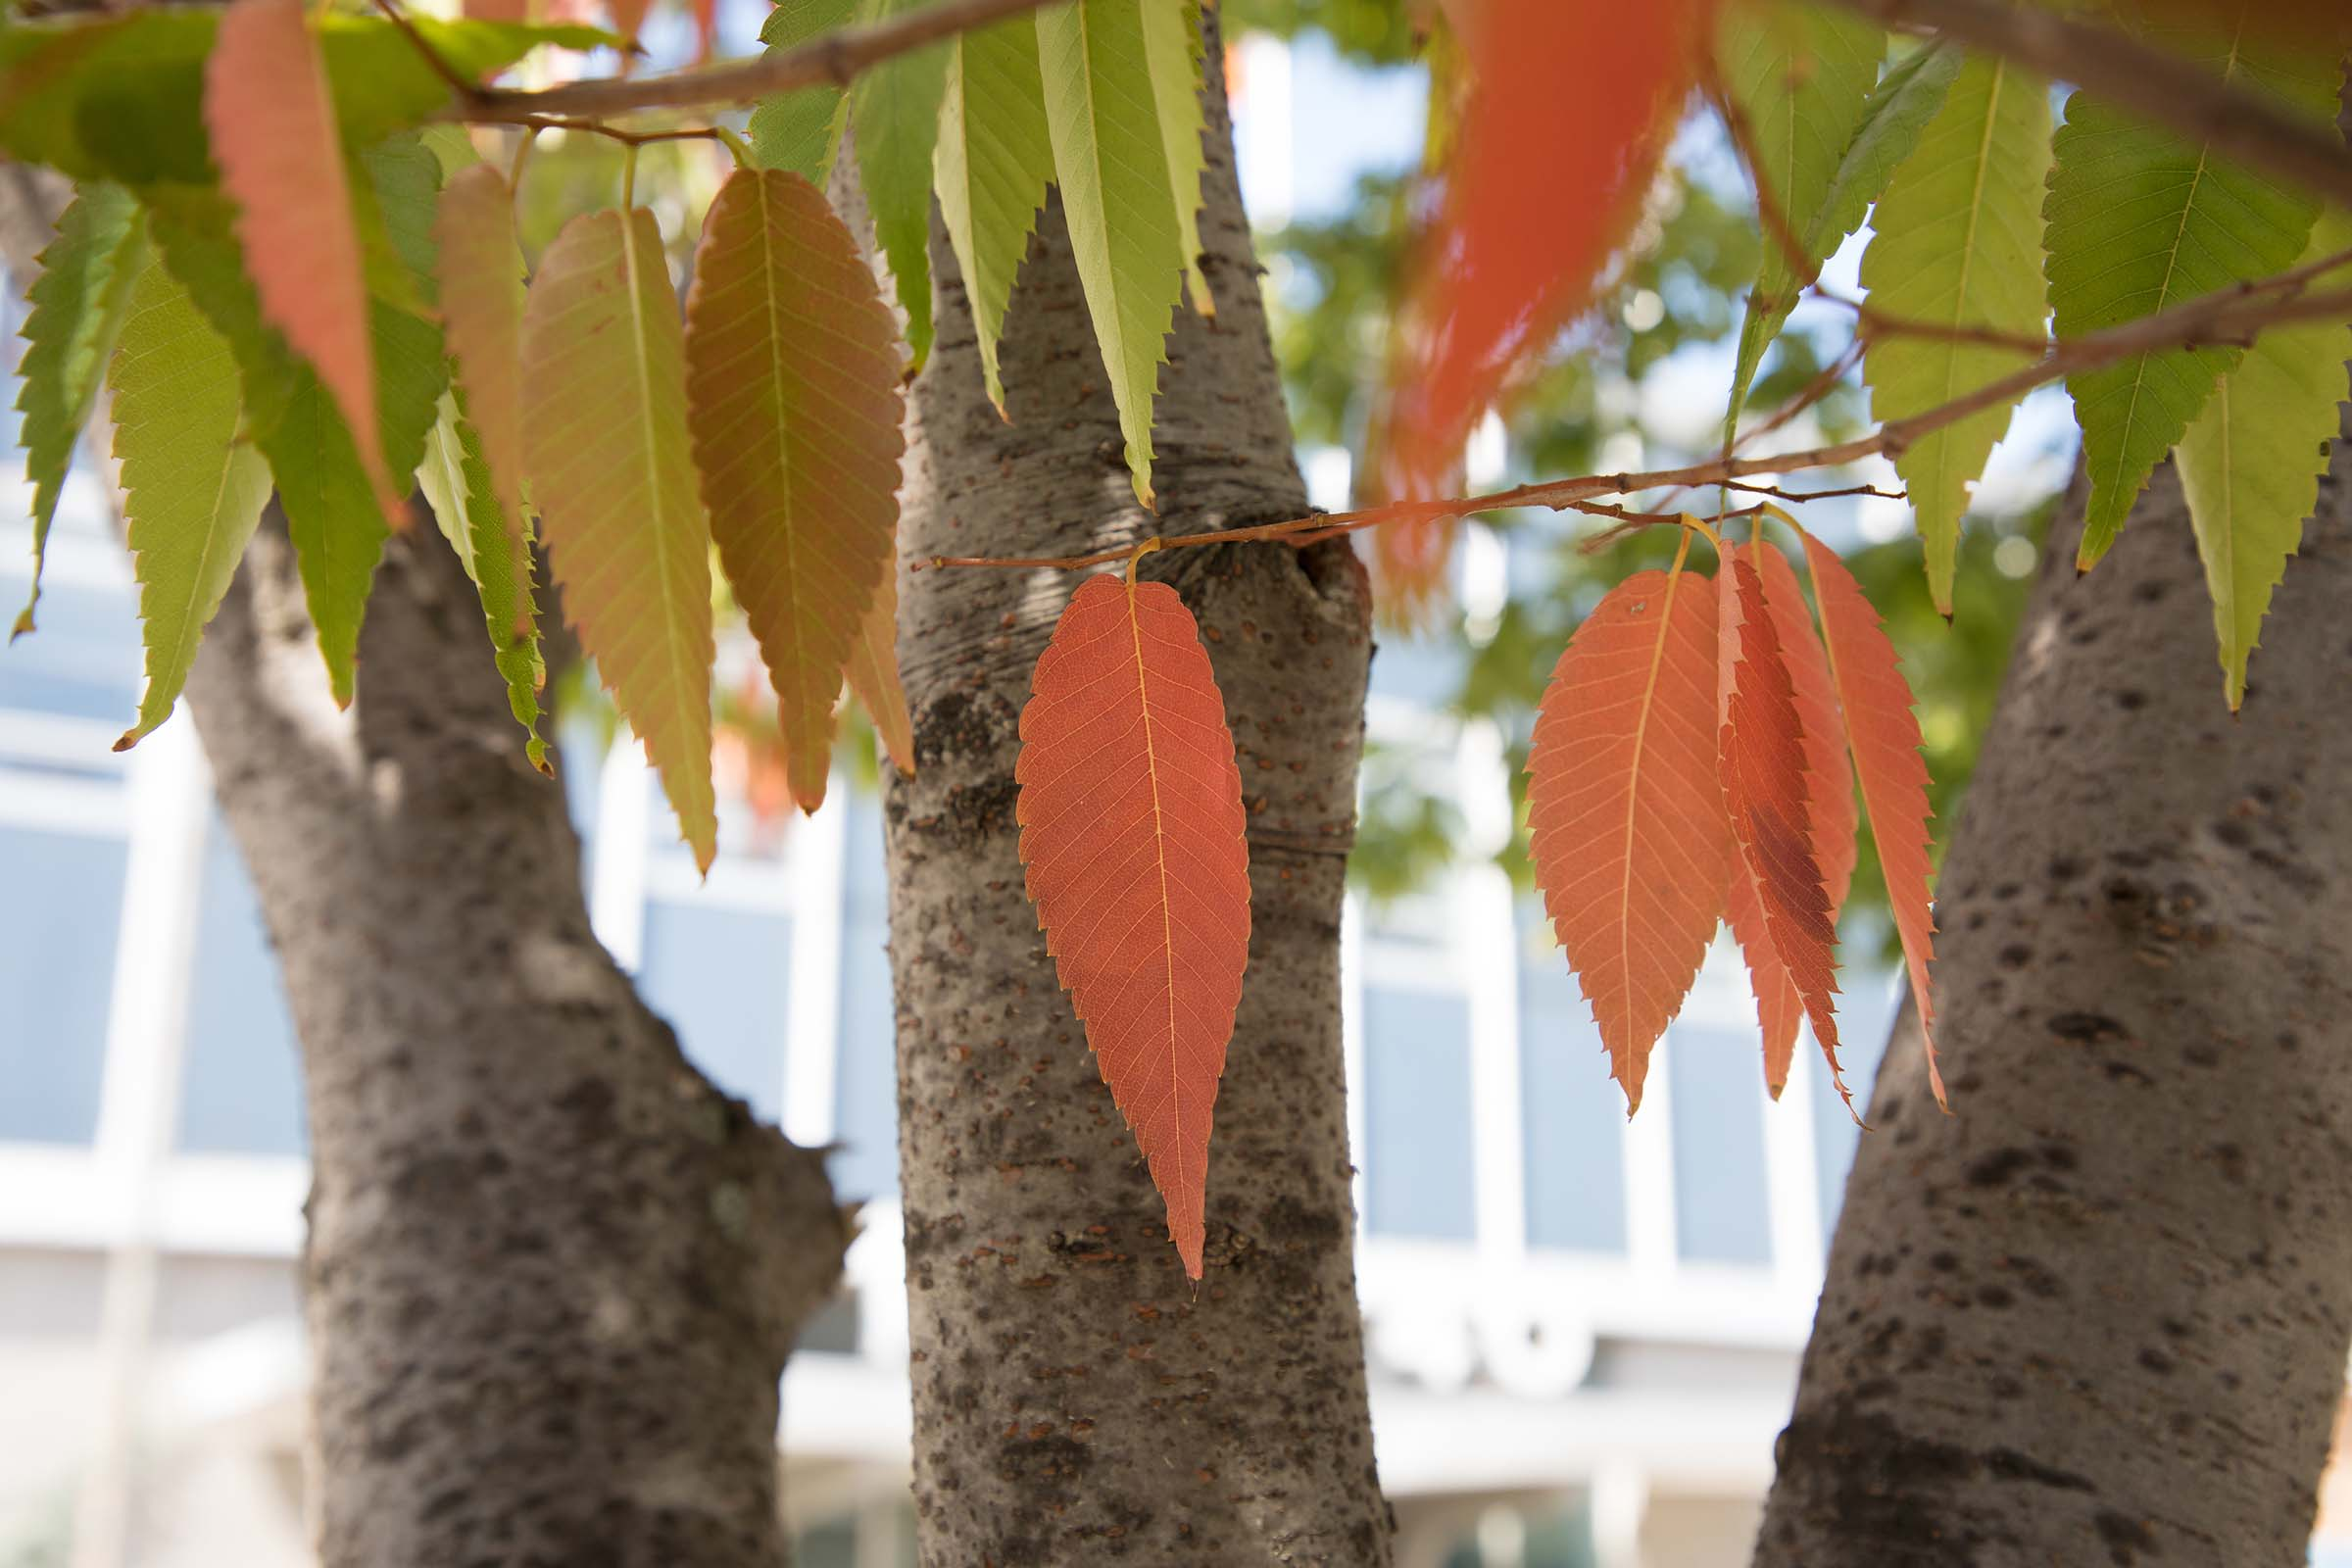 The Japanese Zelcova trees during the fall have a orange hue on the pointed leaves